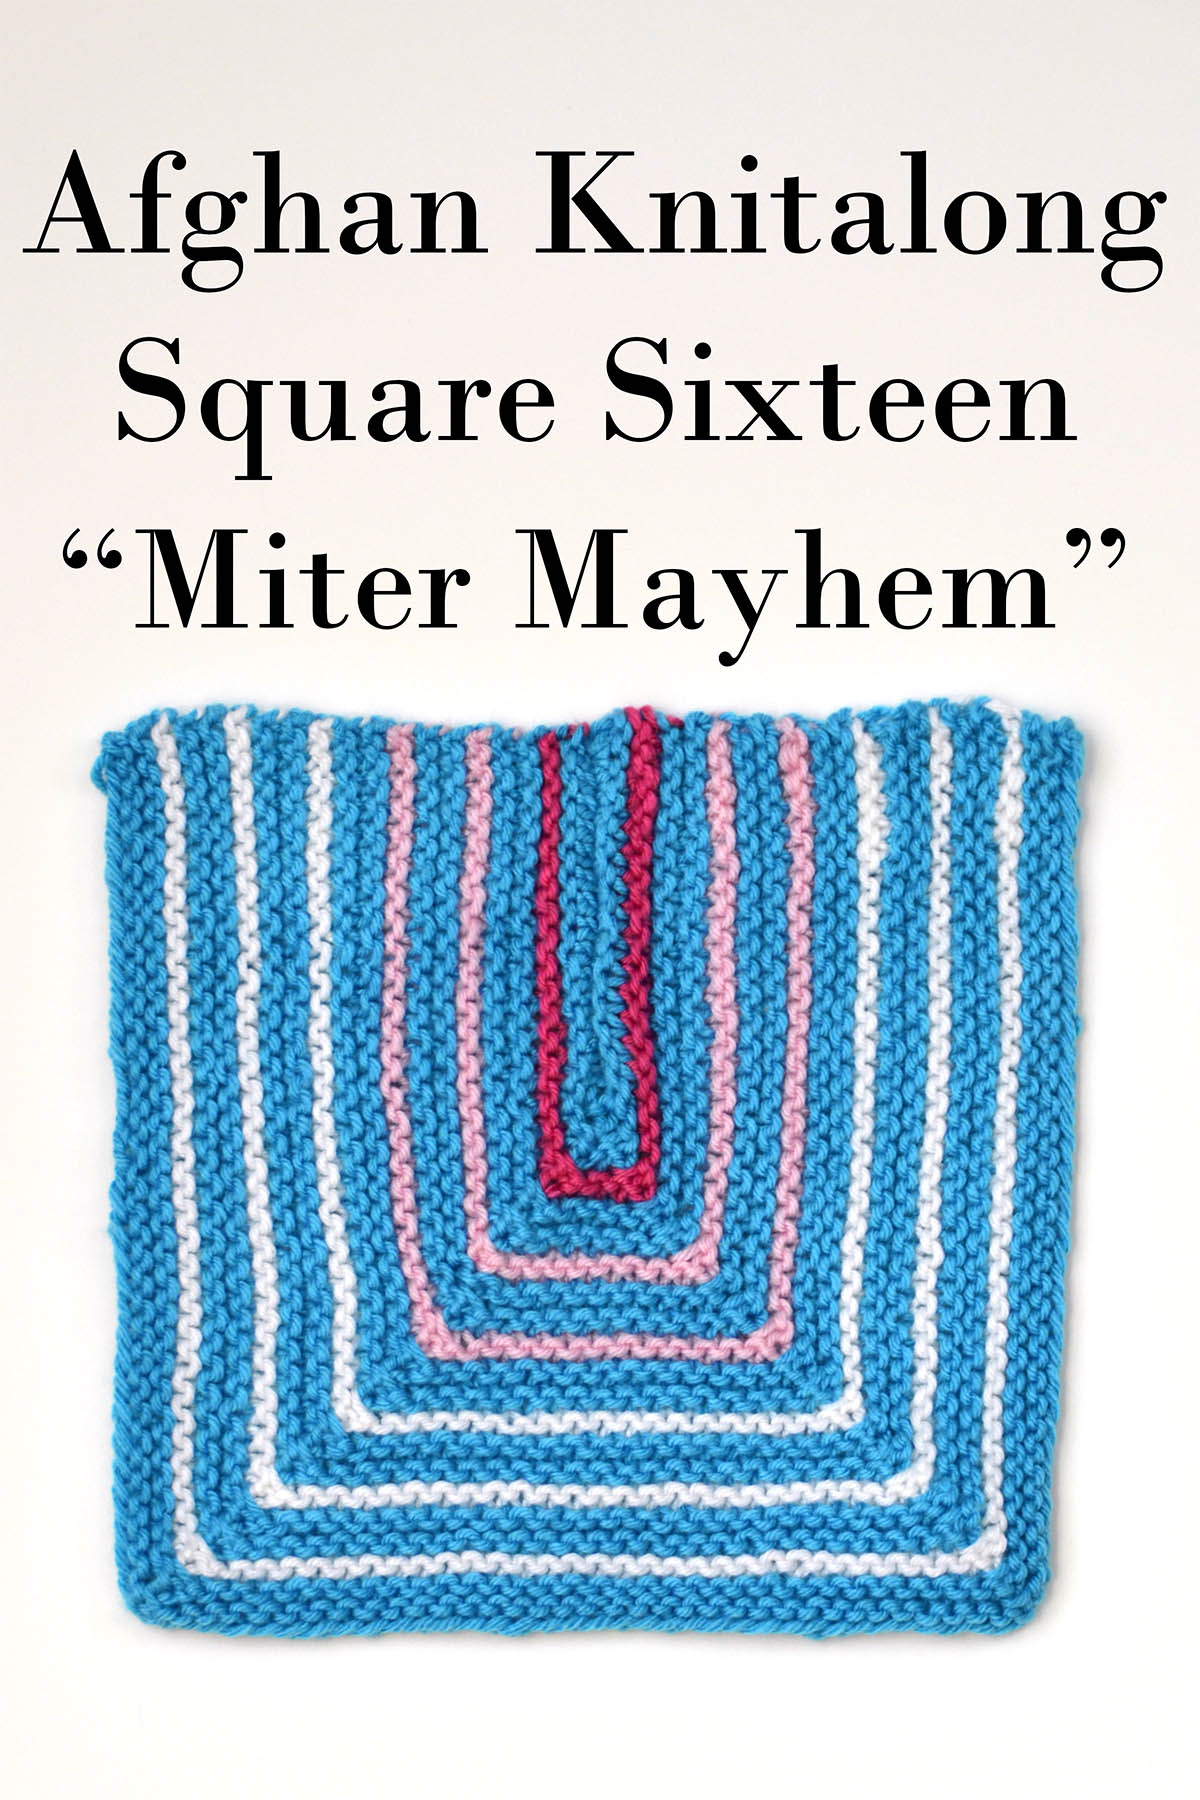 16 Miter Mayhem with title blog